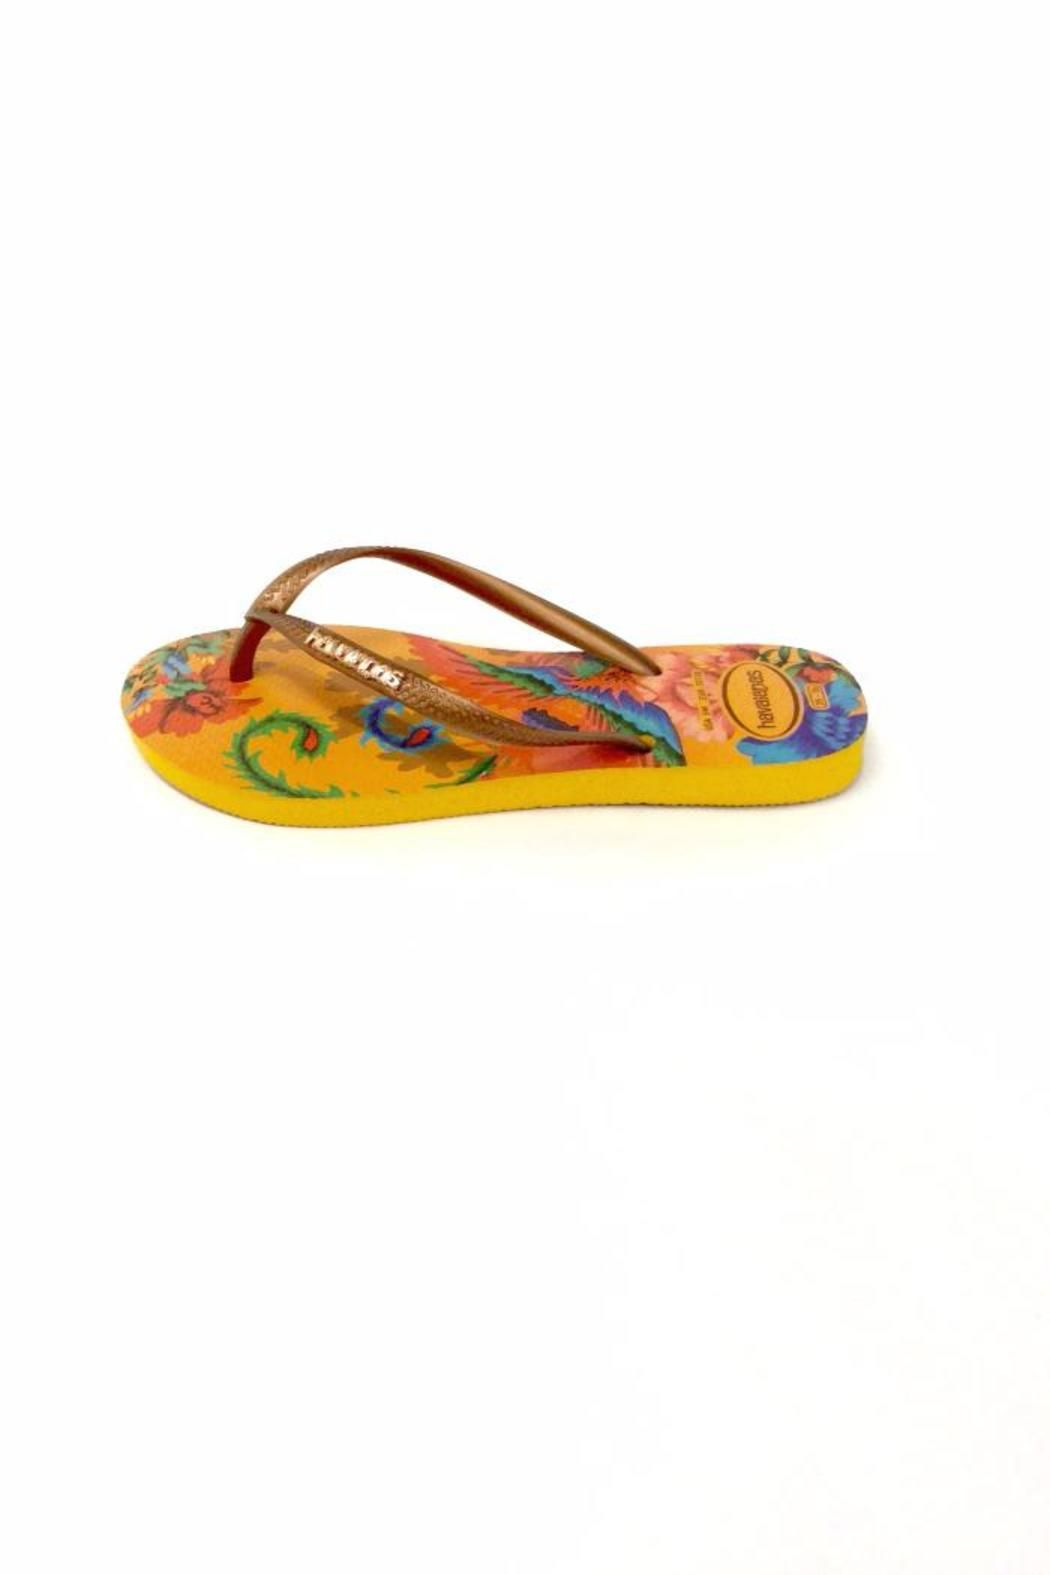 1b24a7b4edd6c3 The Slim Tropical features prints inspired by the phoenix and lotus flower on  Havaianas signature textured footbed for style and comfort.